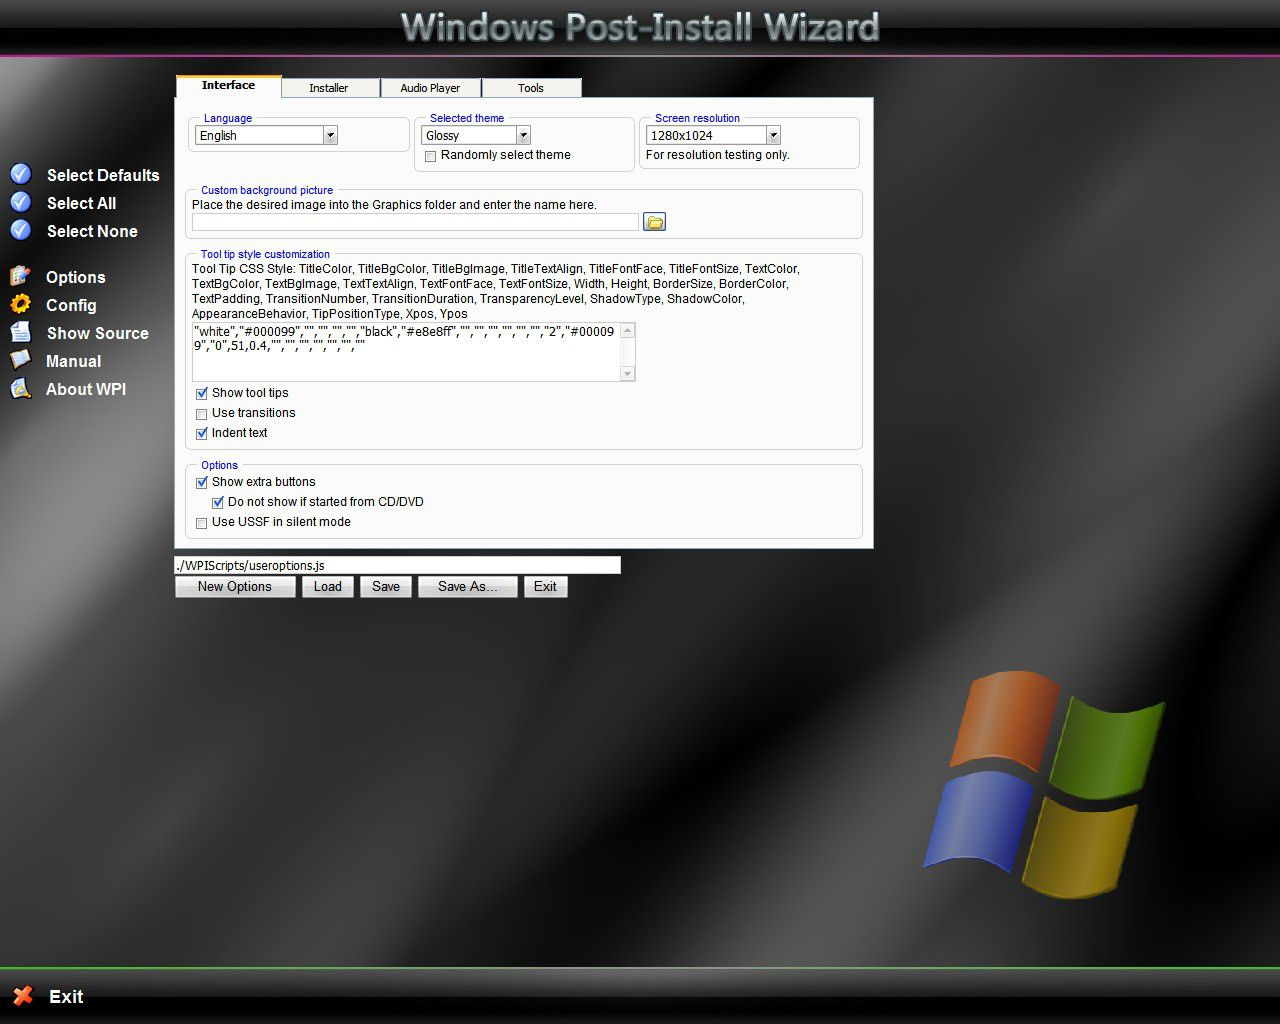 Vorschau Windows Post-Install Wizard - Bild 2